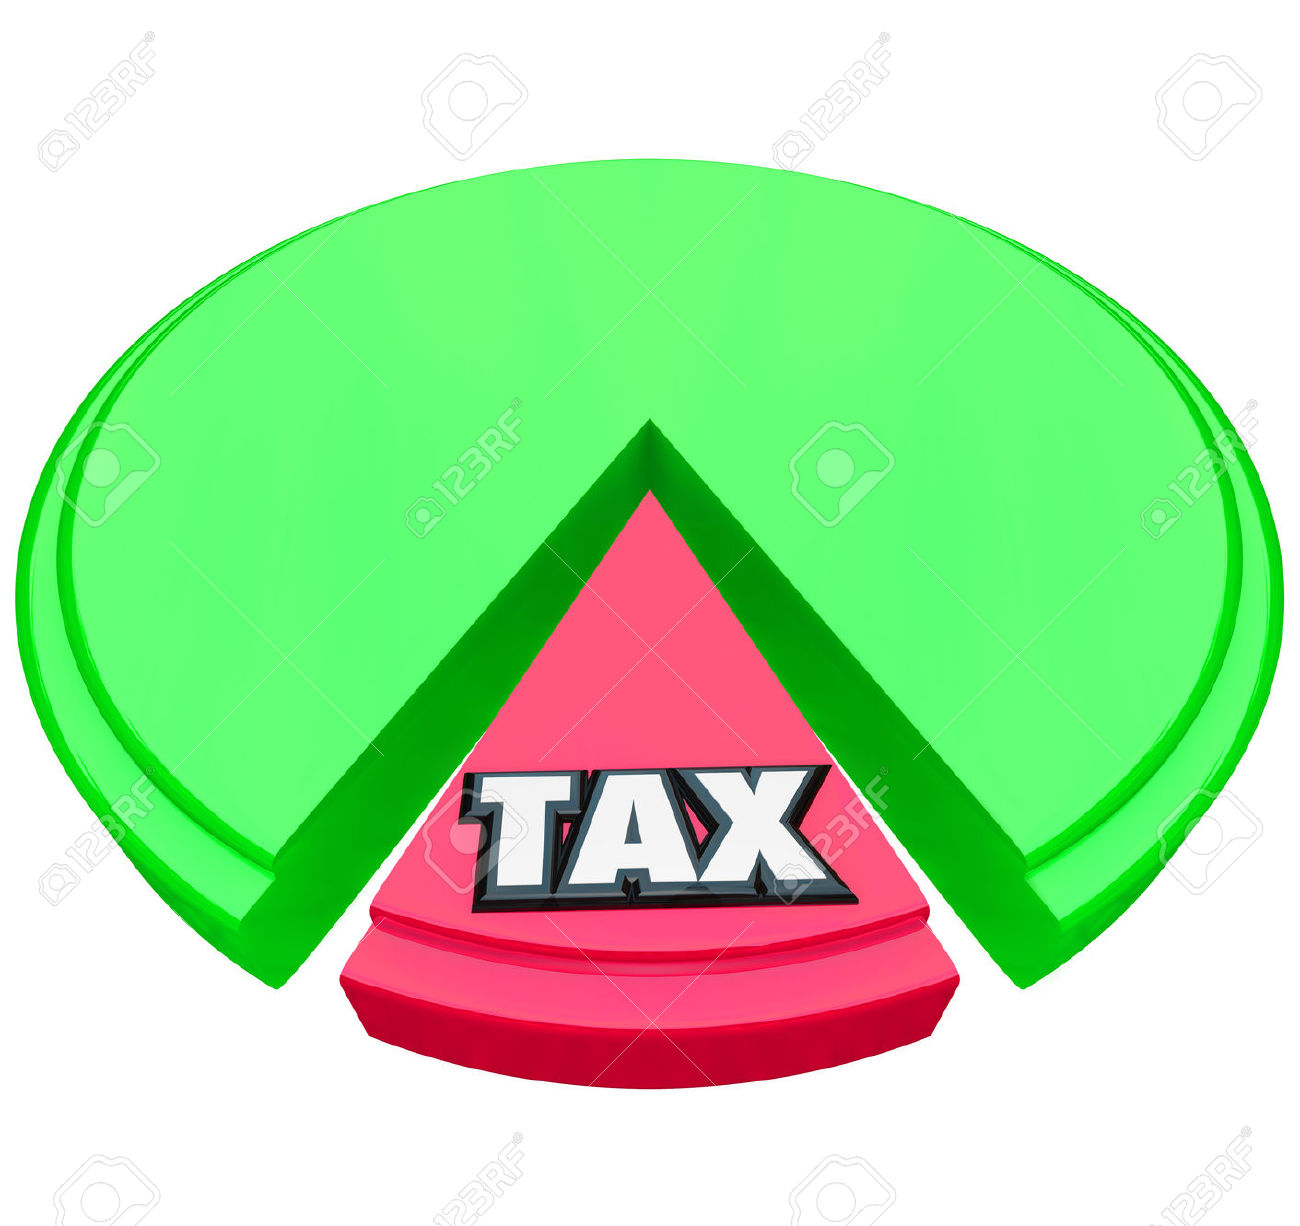 Tax Word On A Pie Chart To Illustrate The High Percentage Or.